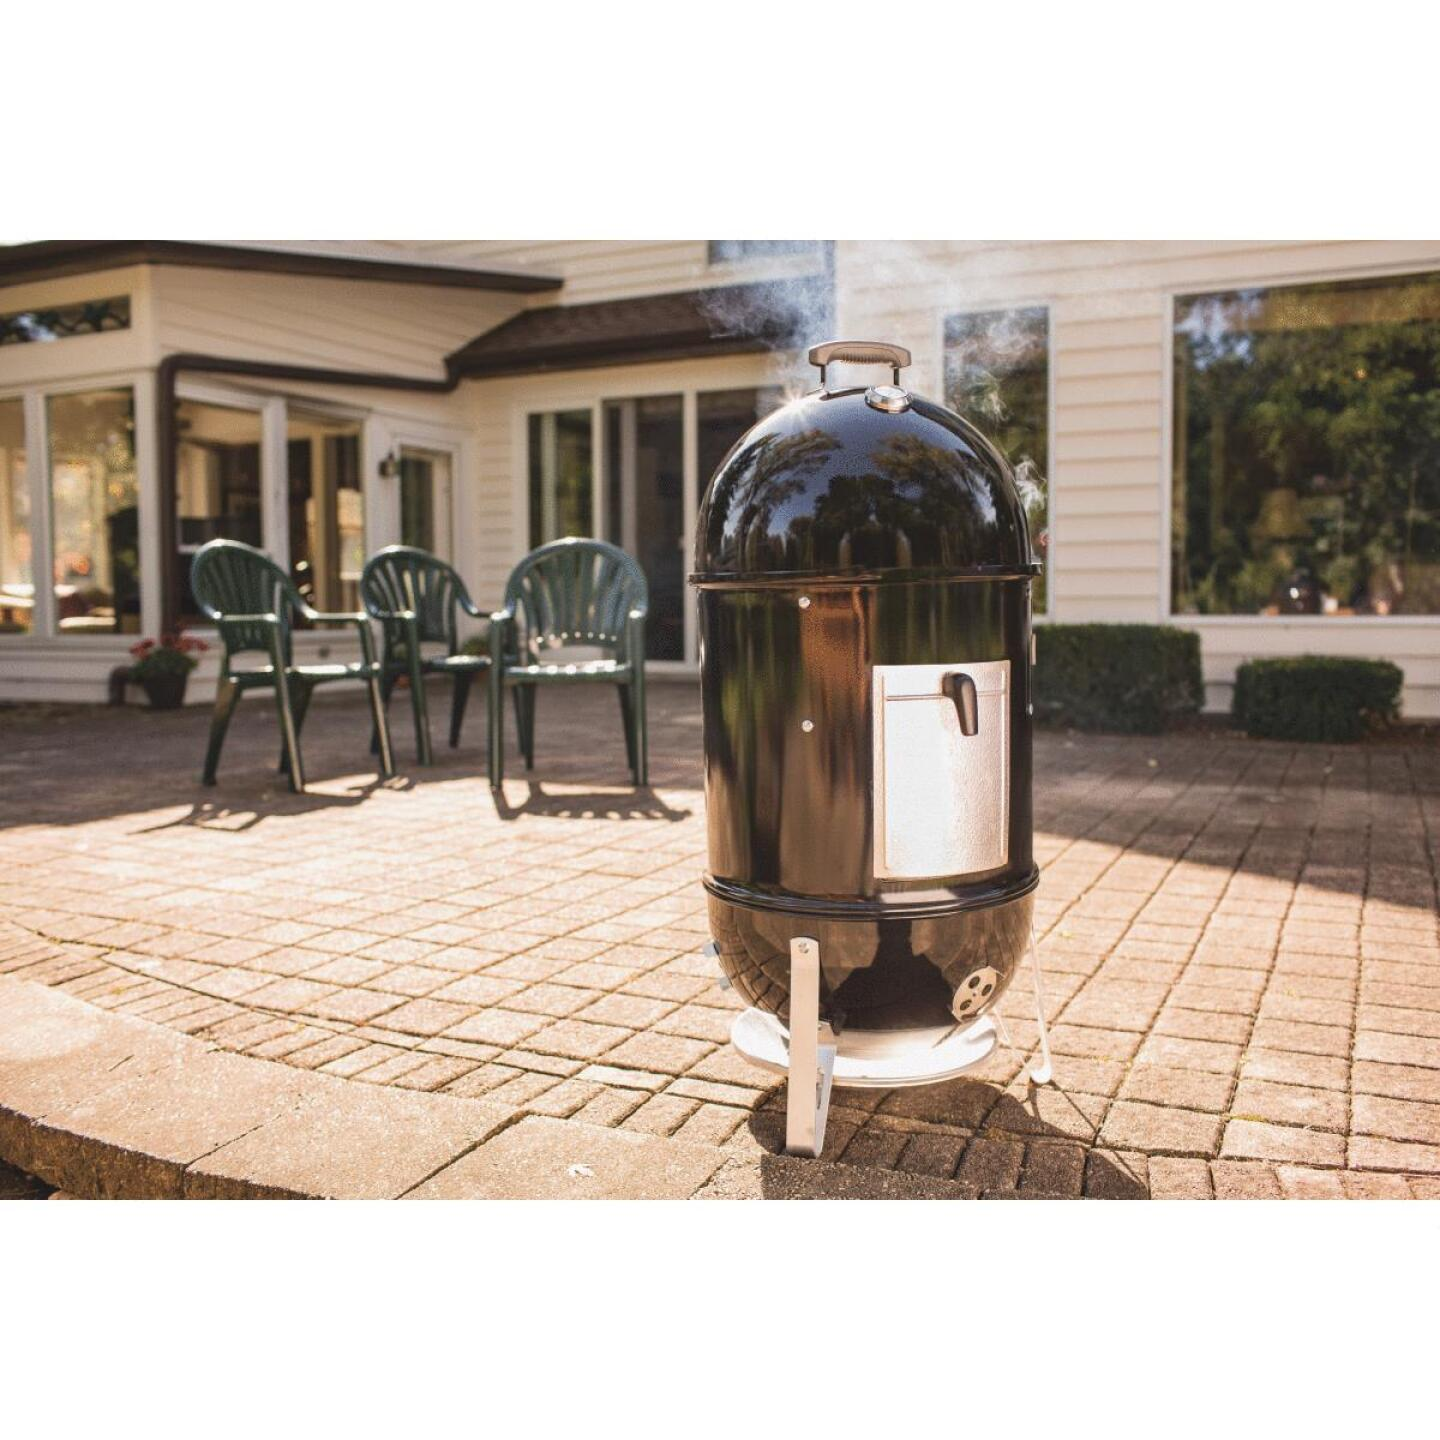 Weber Smokey Mountain Cooker 18 In. Dia. 481 Sq. In. Vertical Charcoal Smoker Image 7